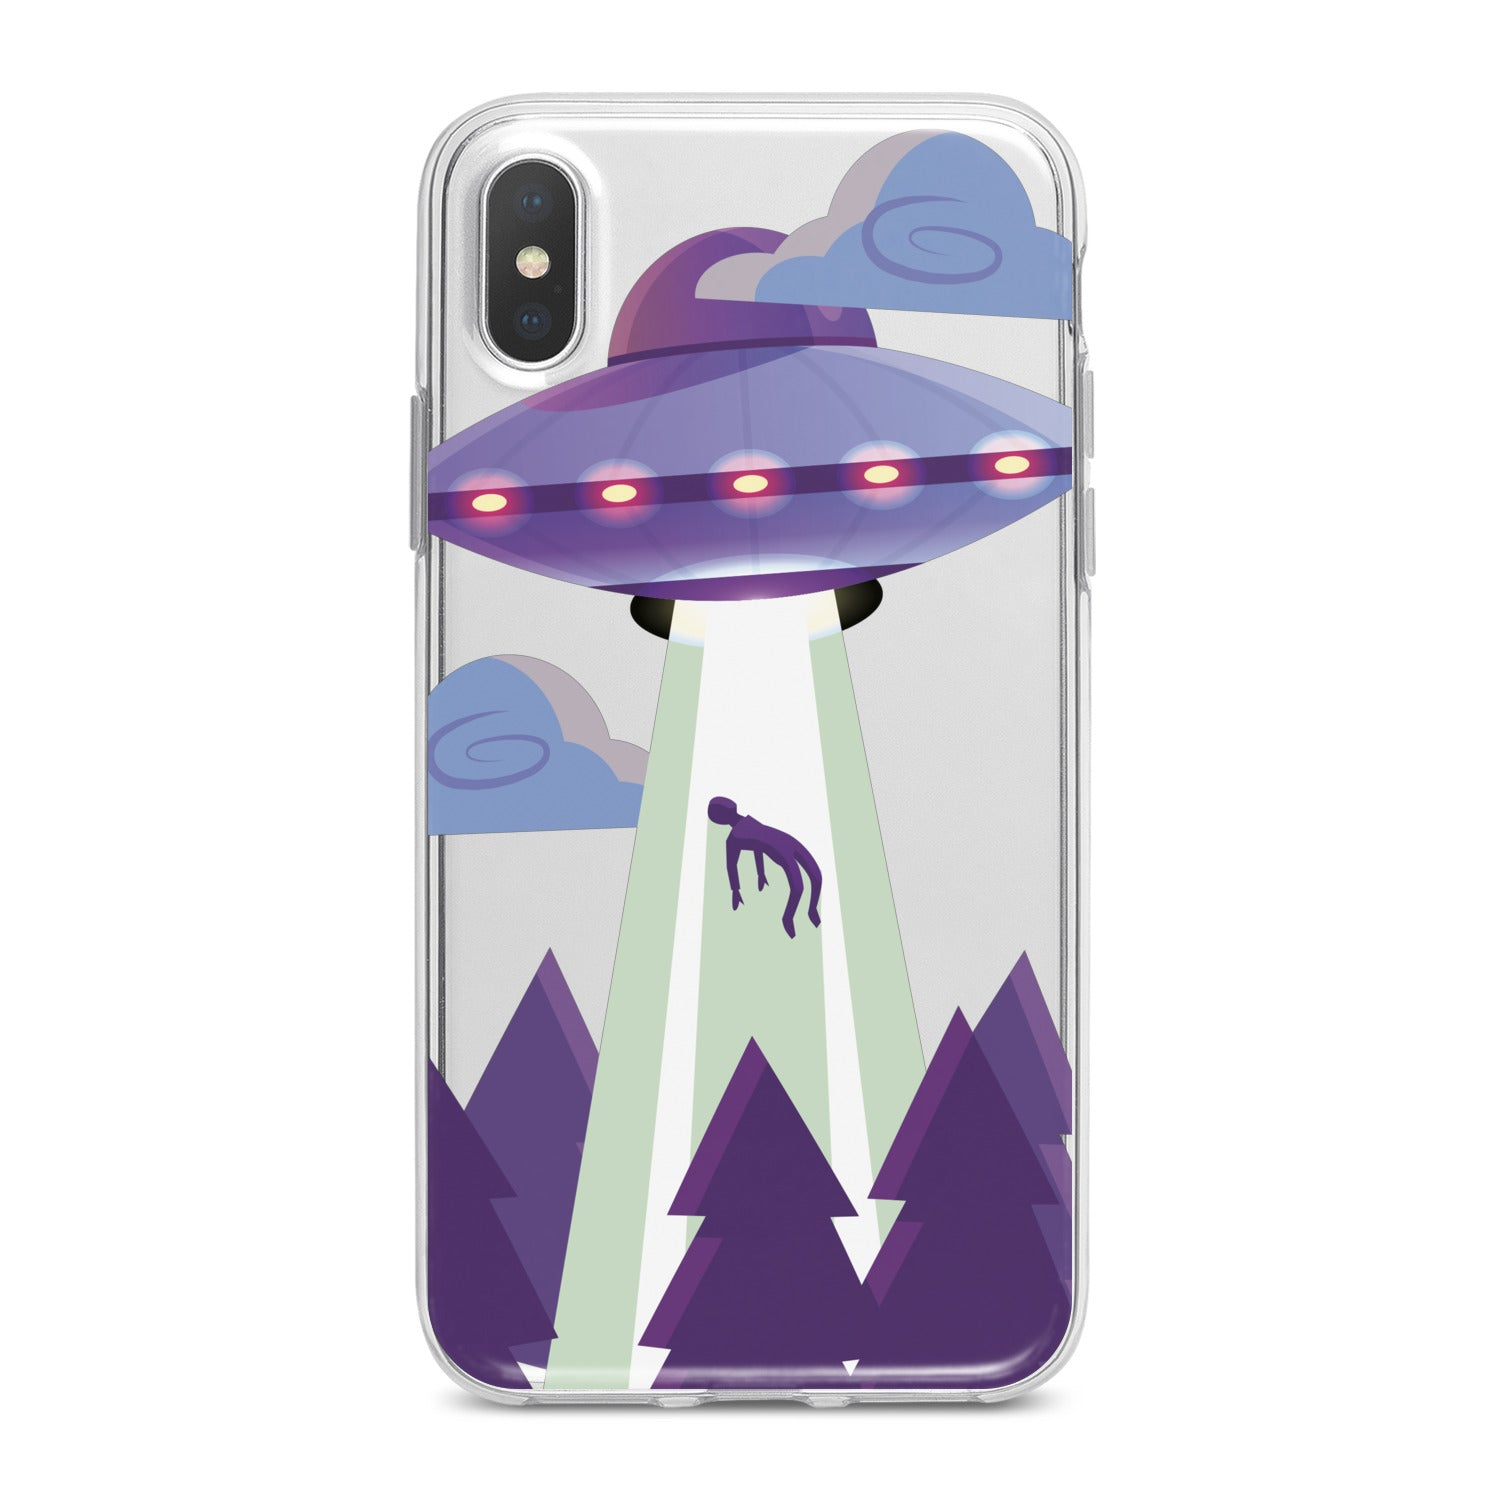 Lex Altern Human Aliens Phone Case for your iPhone & Android phone.